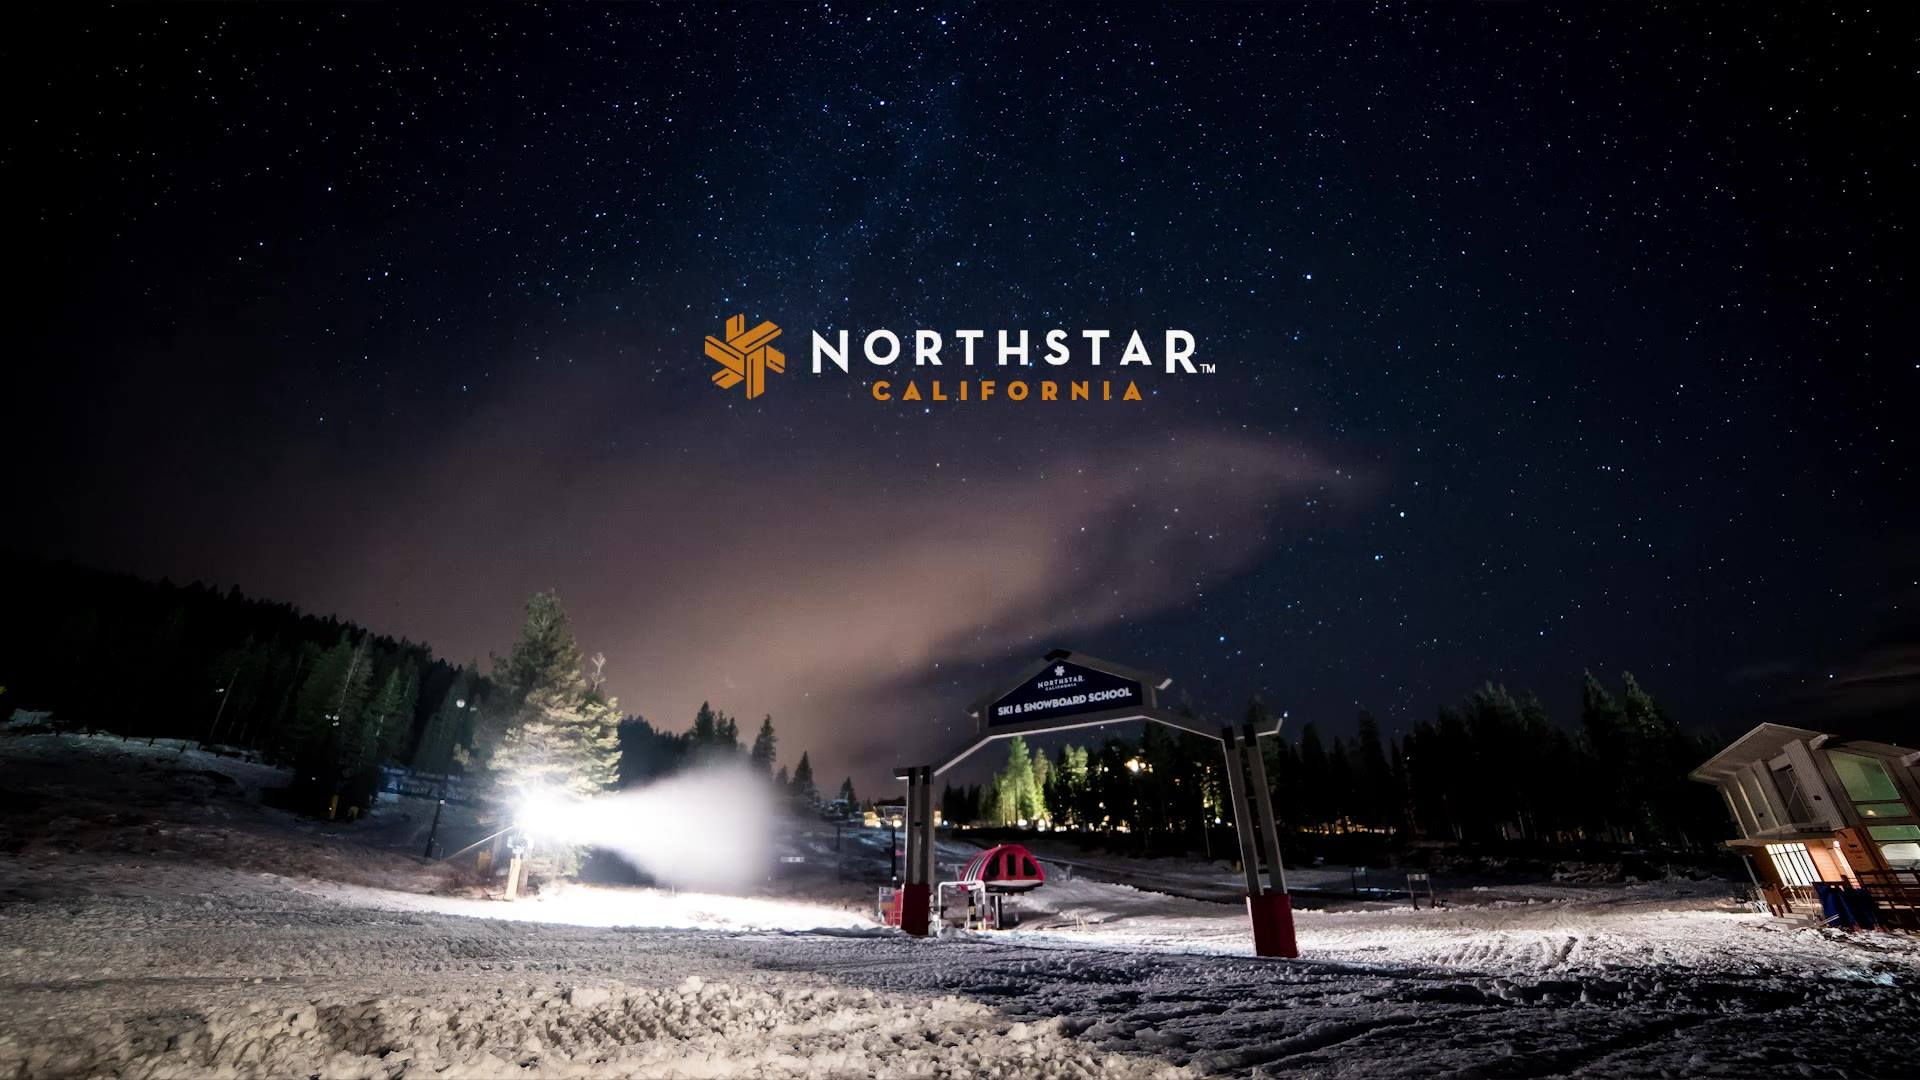 Snowmaking has kicked off. Winter is in the air. Northstar opens in 9 days. Are you ready?  http://bit.ly/2heKDTo  #First30 #Northstar #WeLOVEMtnOps #LetItSnow #OpeningDayNov17 #PassSalesEndNov19 🎥: Generikal Design